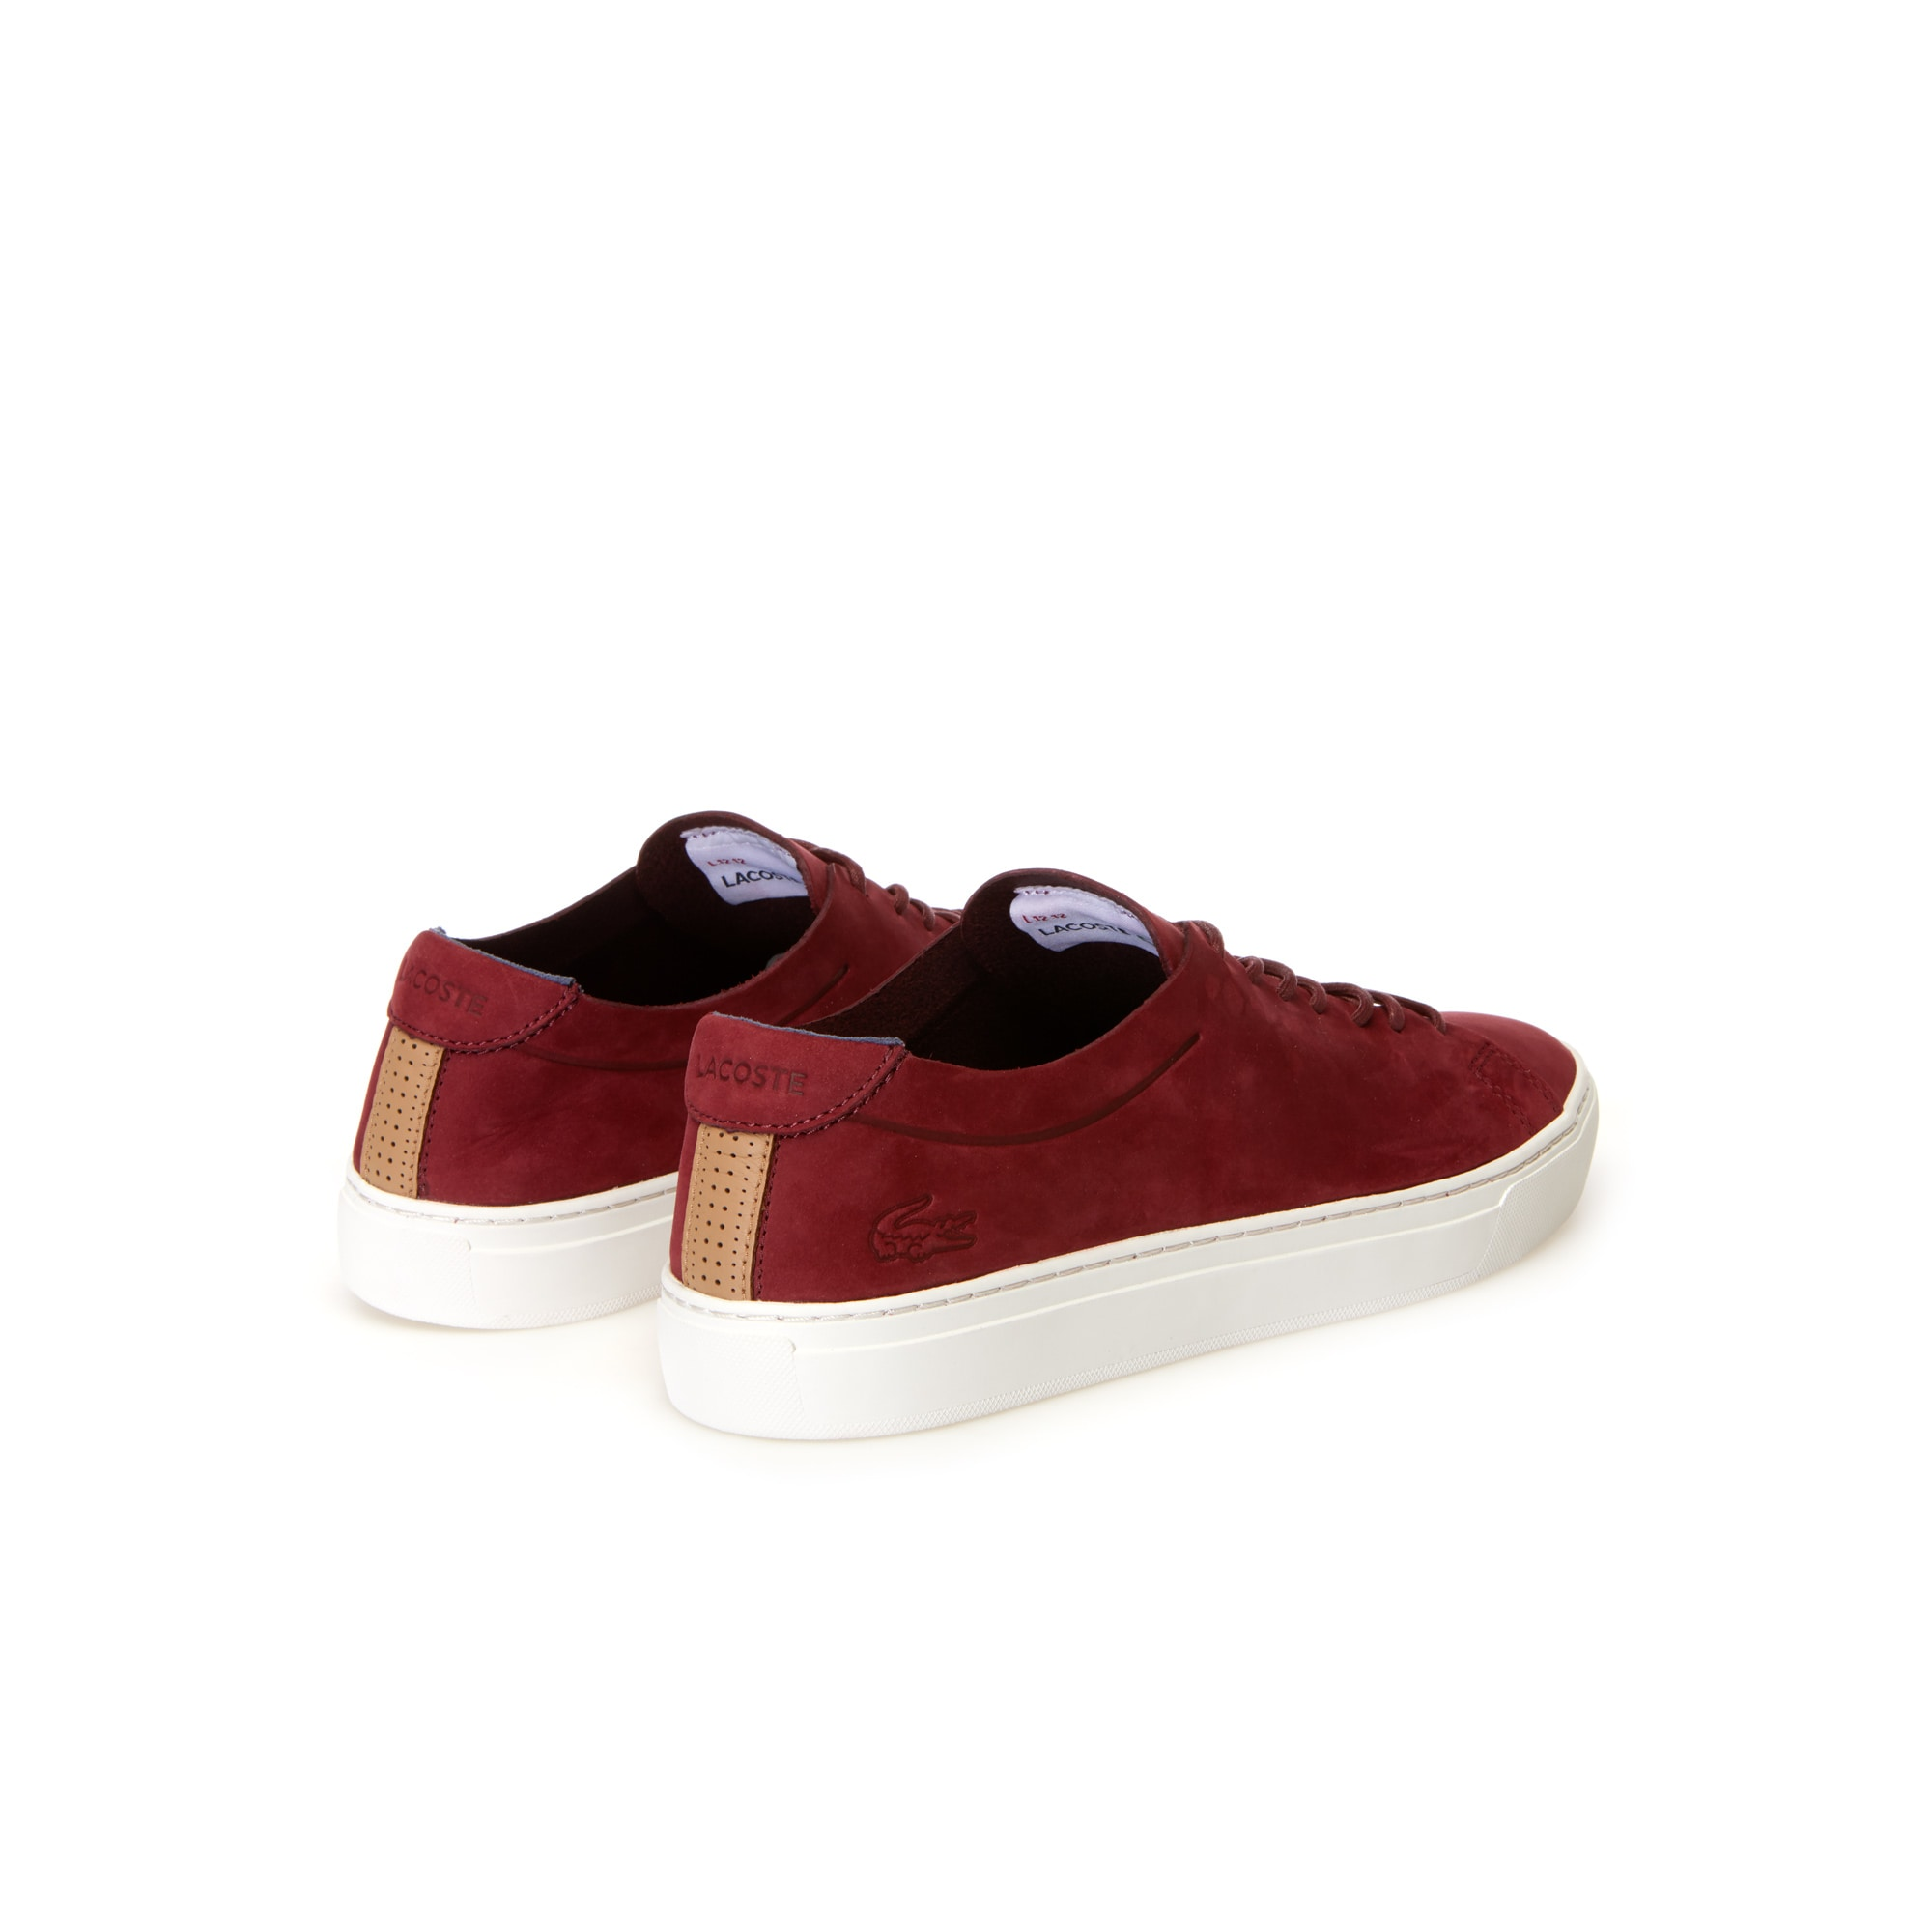 2be06c0dae13c Men s L.12.12 UNLINED Nubuck Leather Trainers